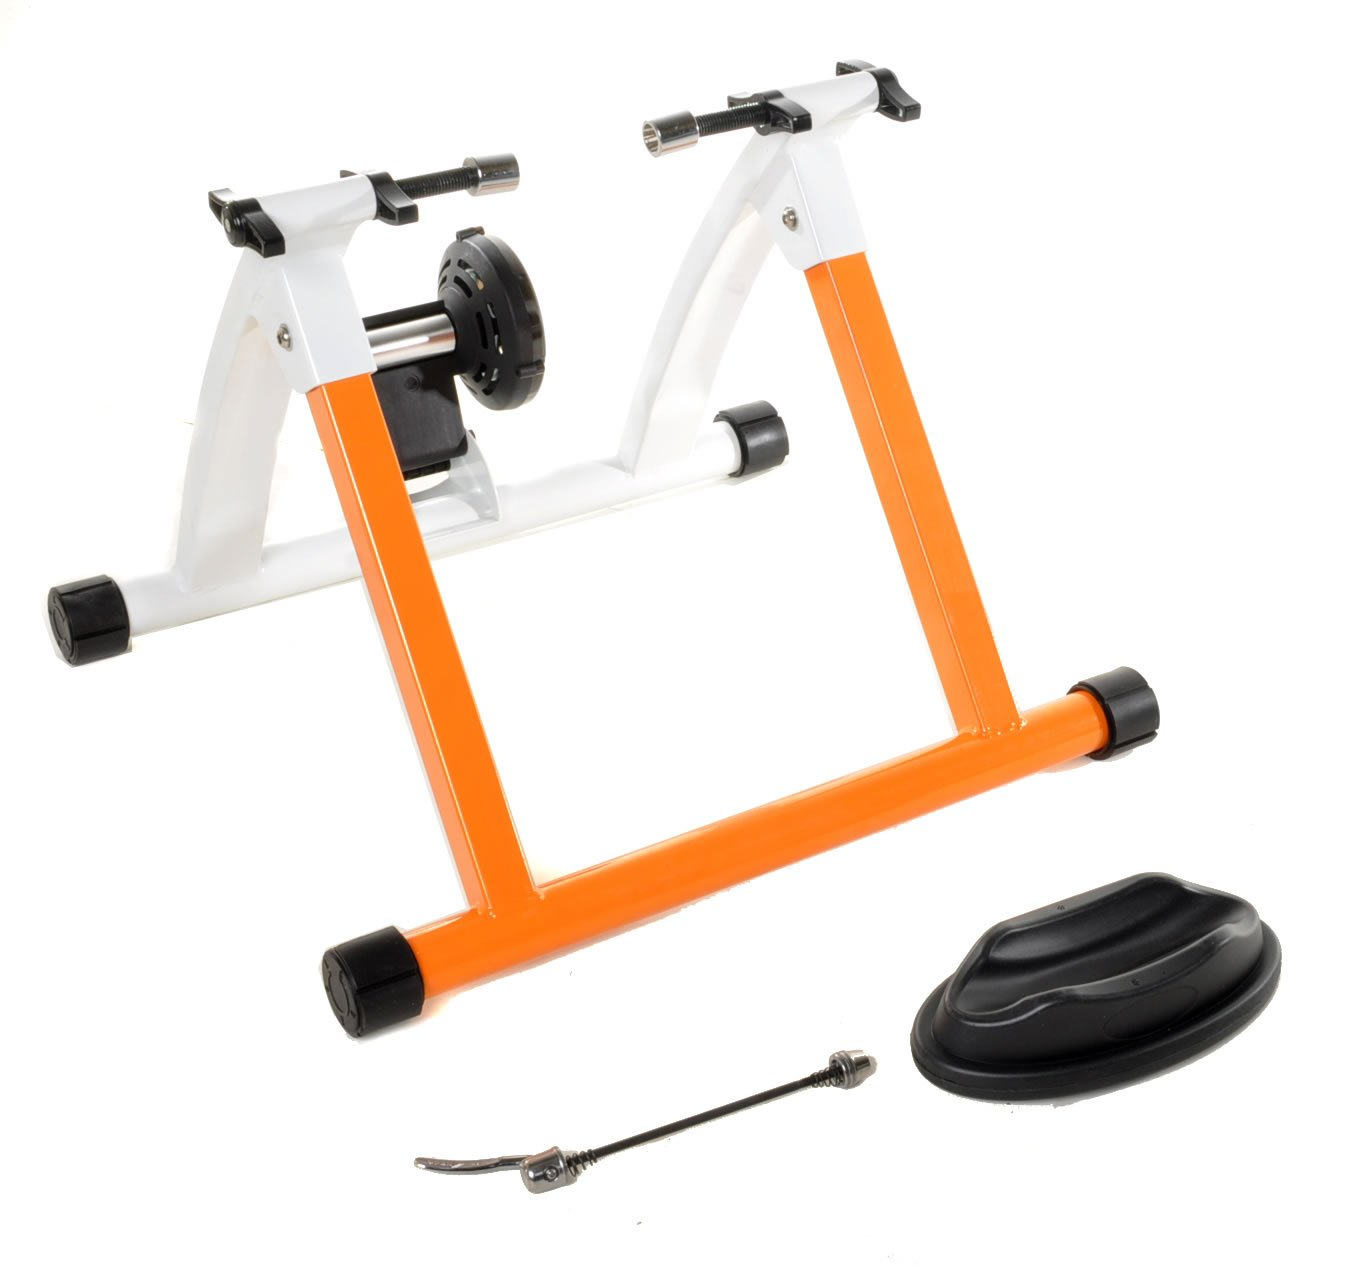 Conquer Indoor Bike Trainer Portable Exercise Bicycle Magnetic Stand by Conquer (Image #2)